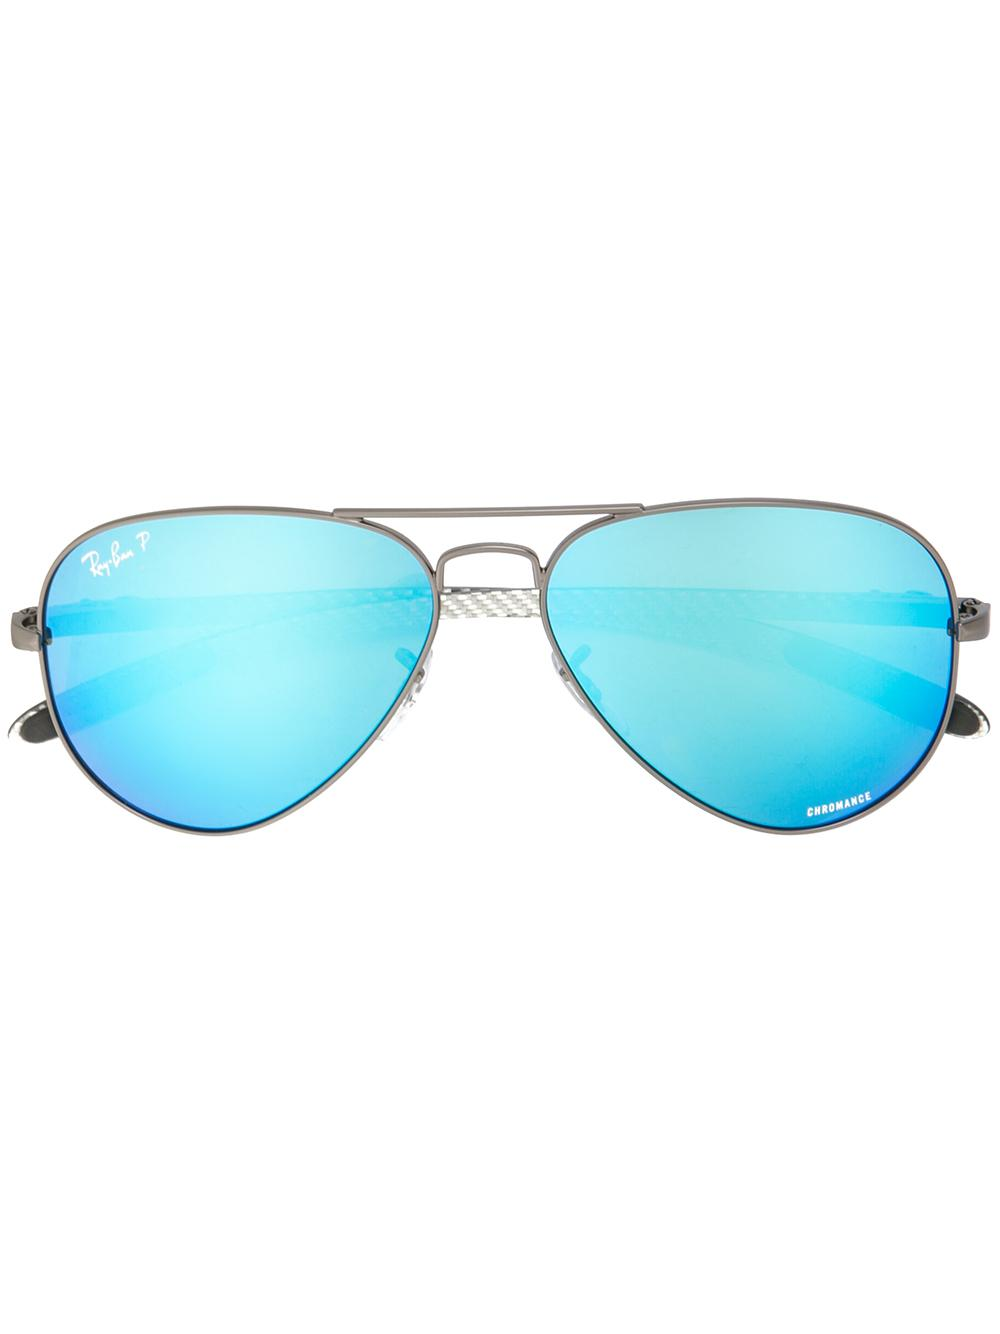 Chromance Mirrored Aviator Sunglasses